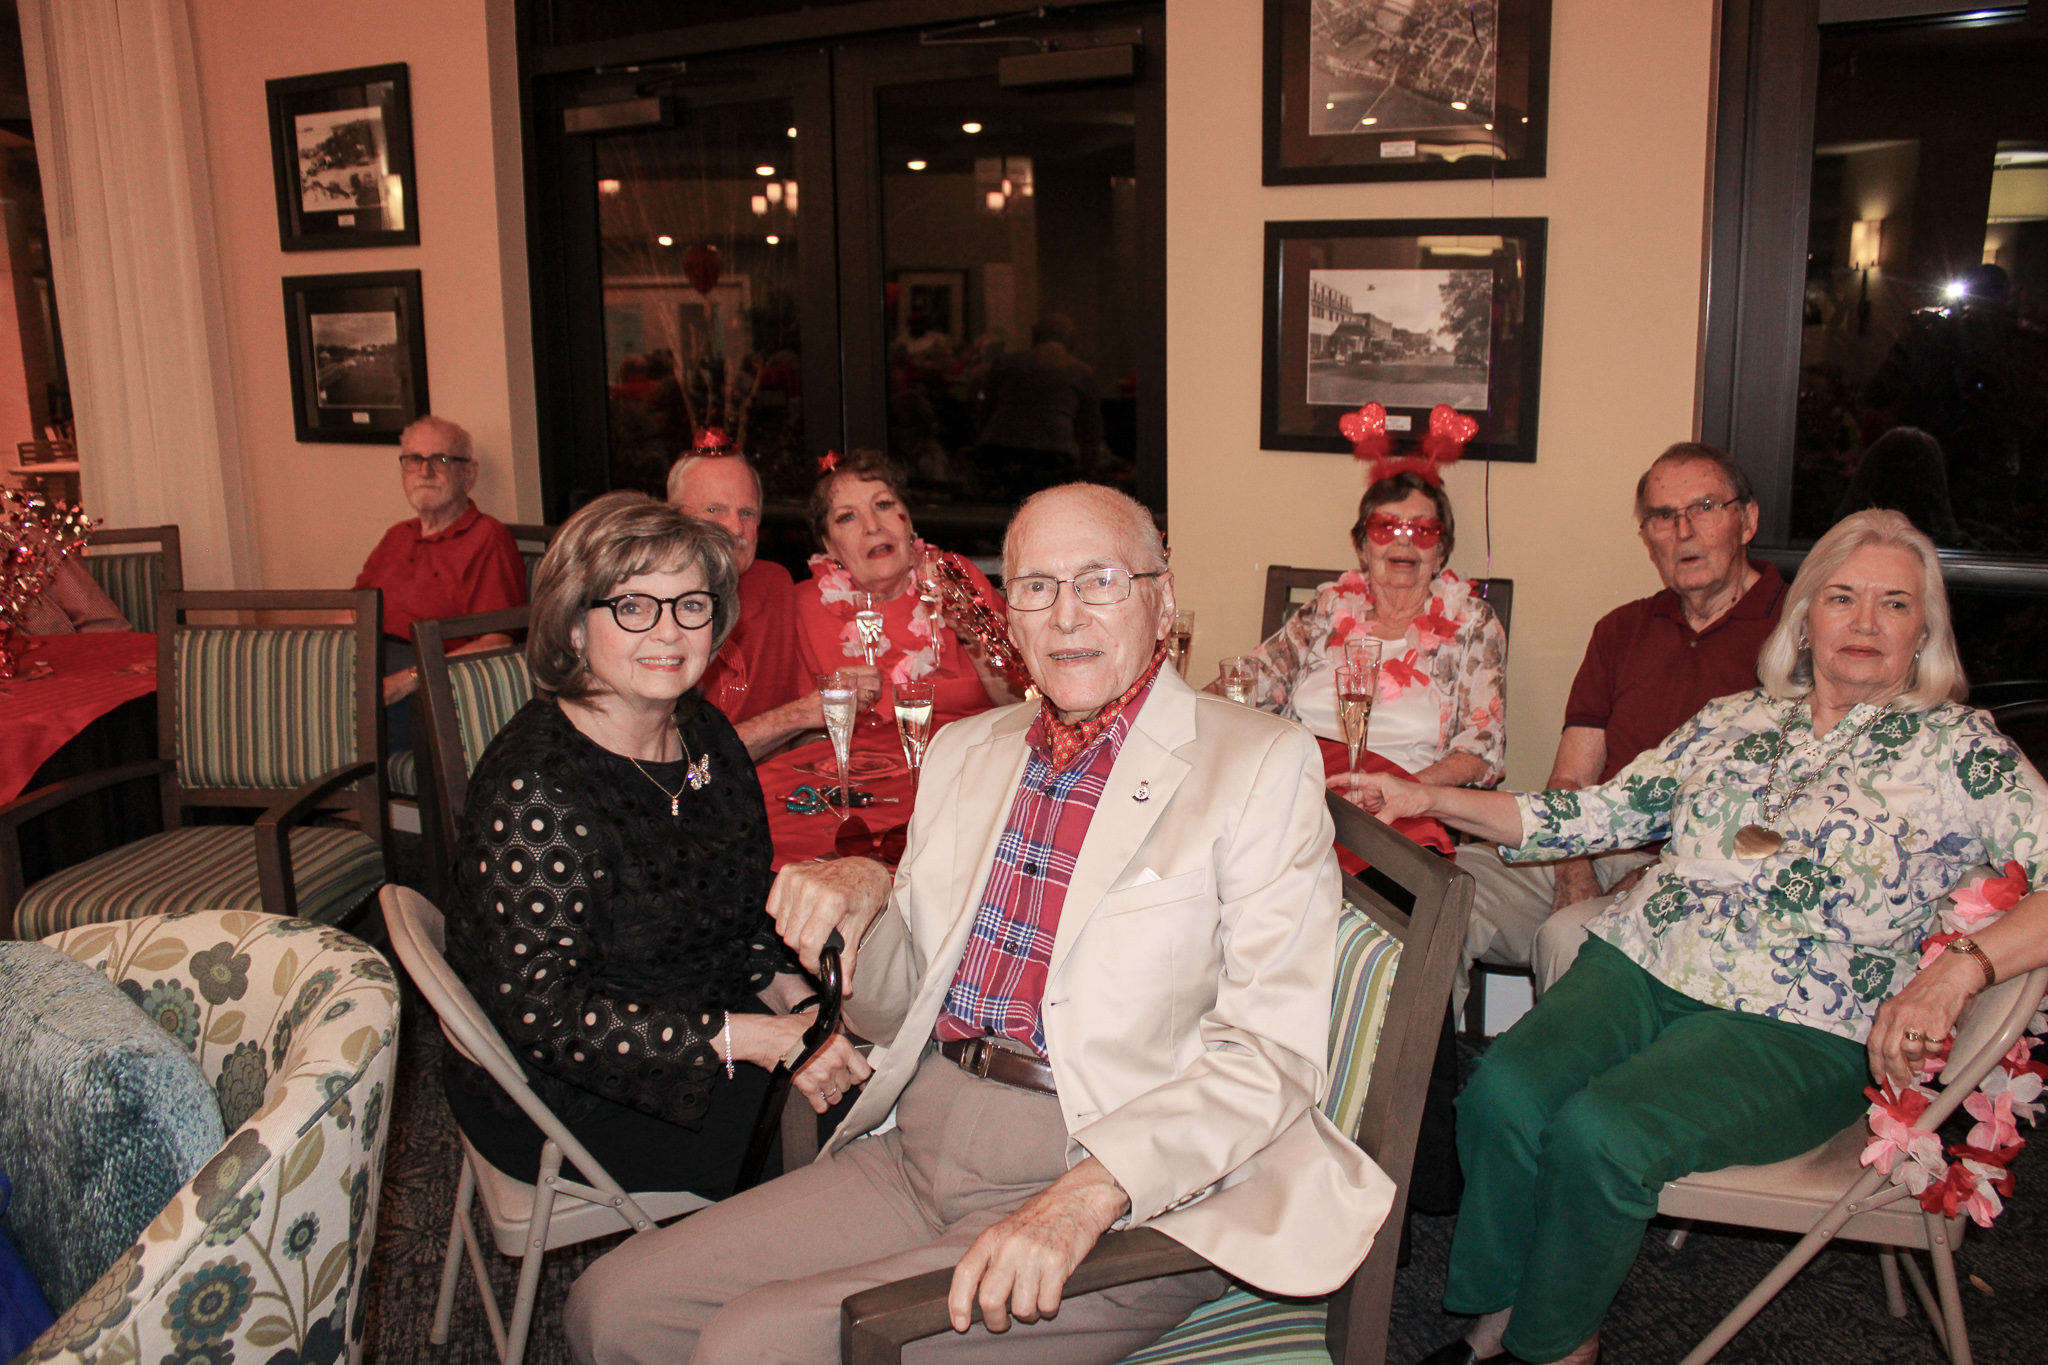 group of older adults spending time together